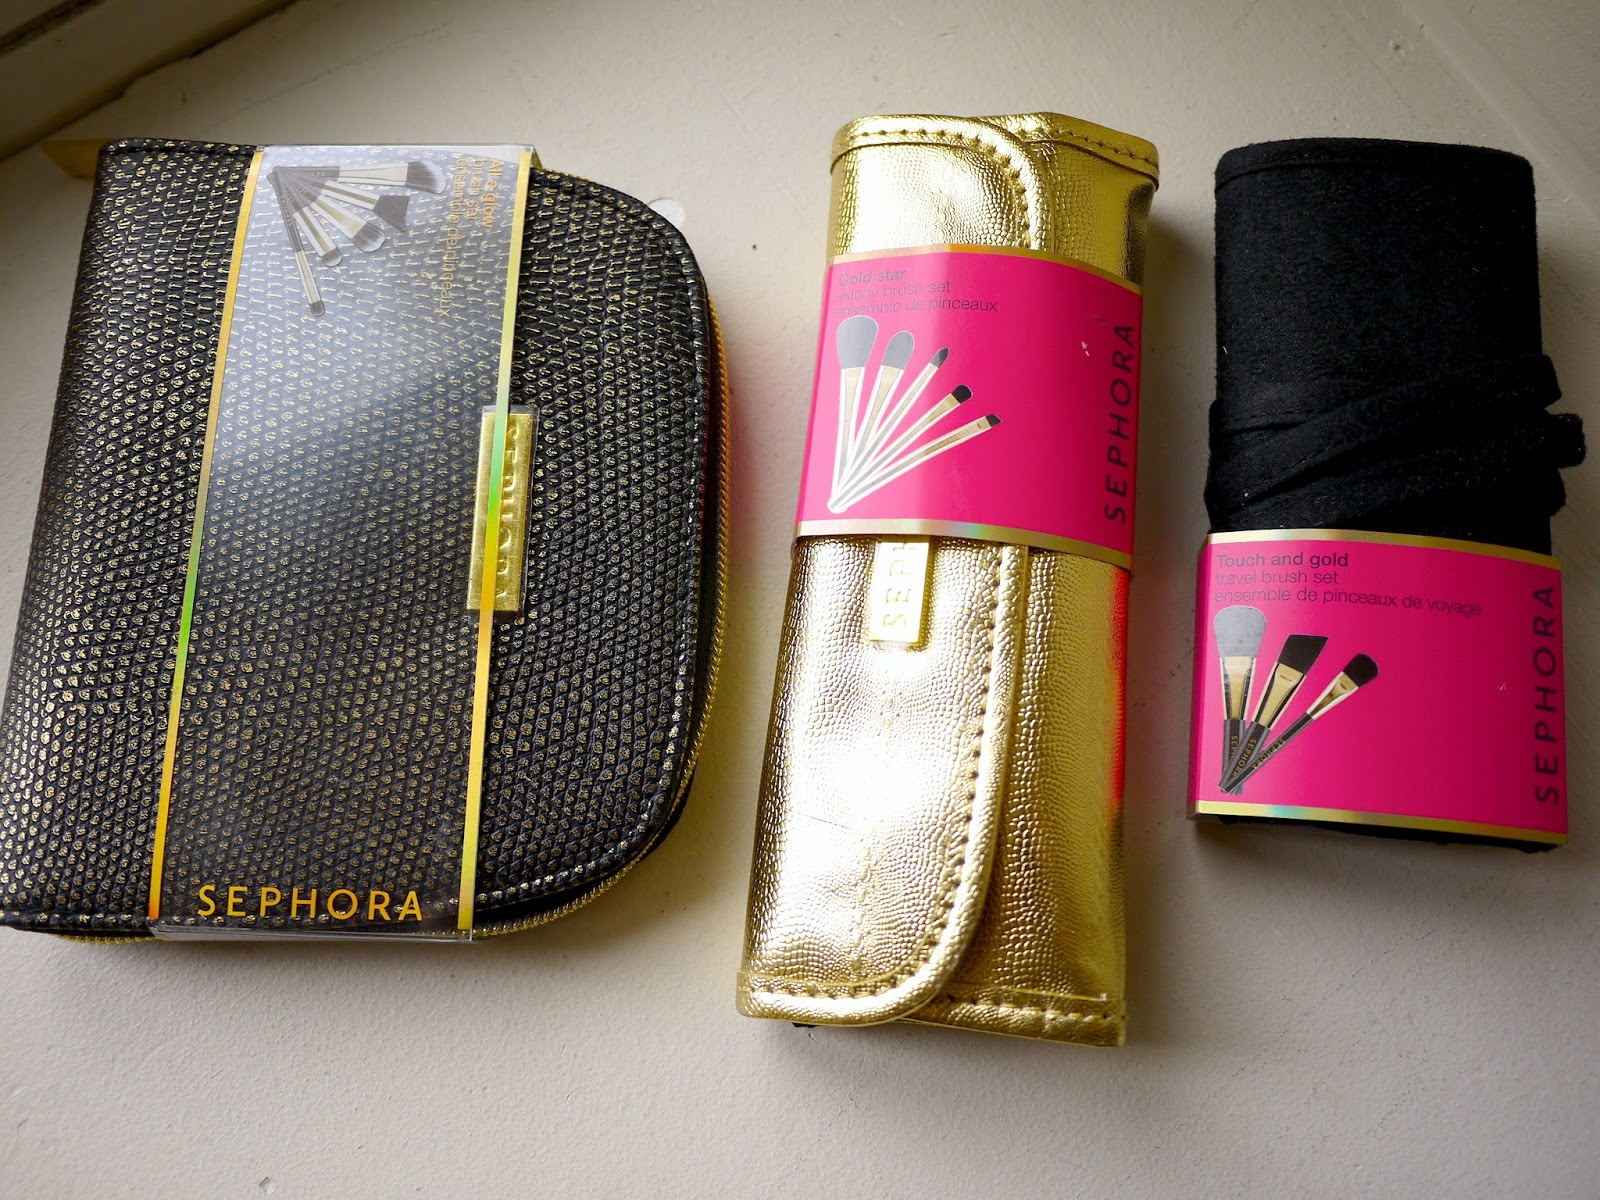 sephora touch and gold travel brush set all a glow brush set gold star skinny brush set review